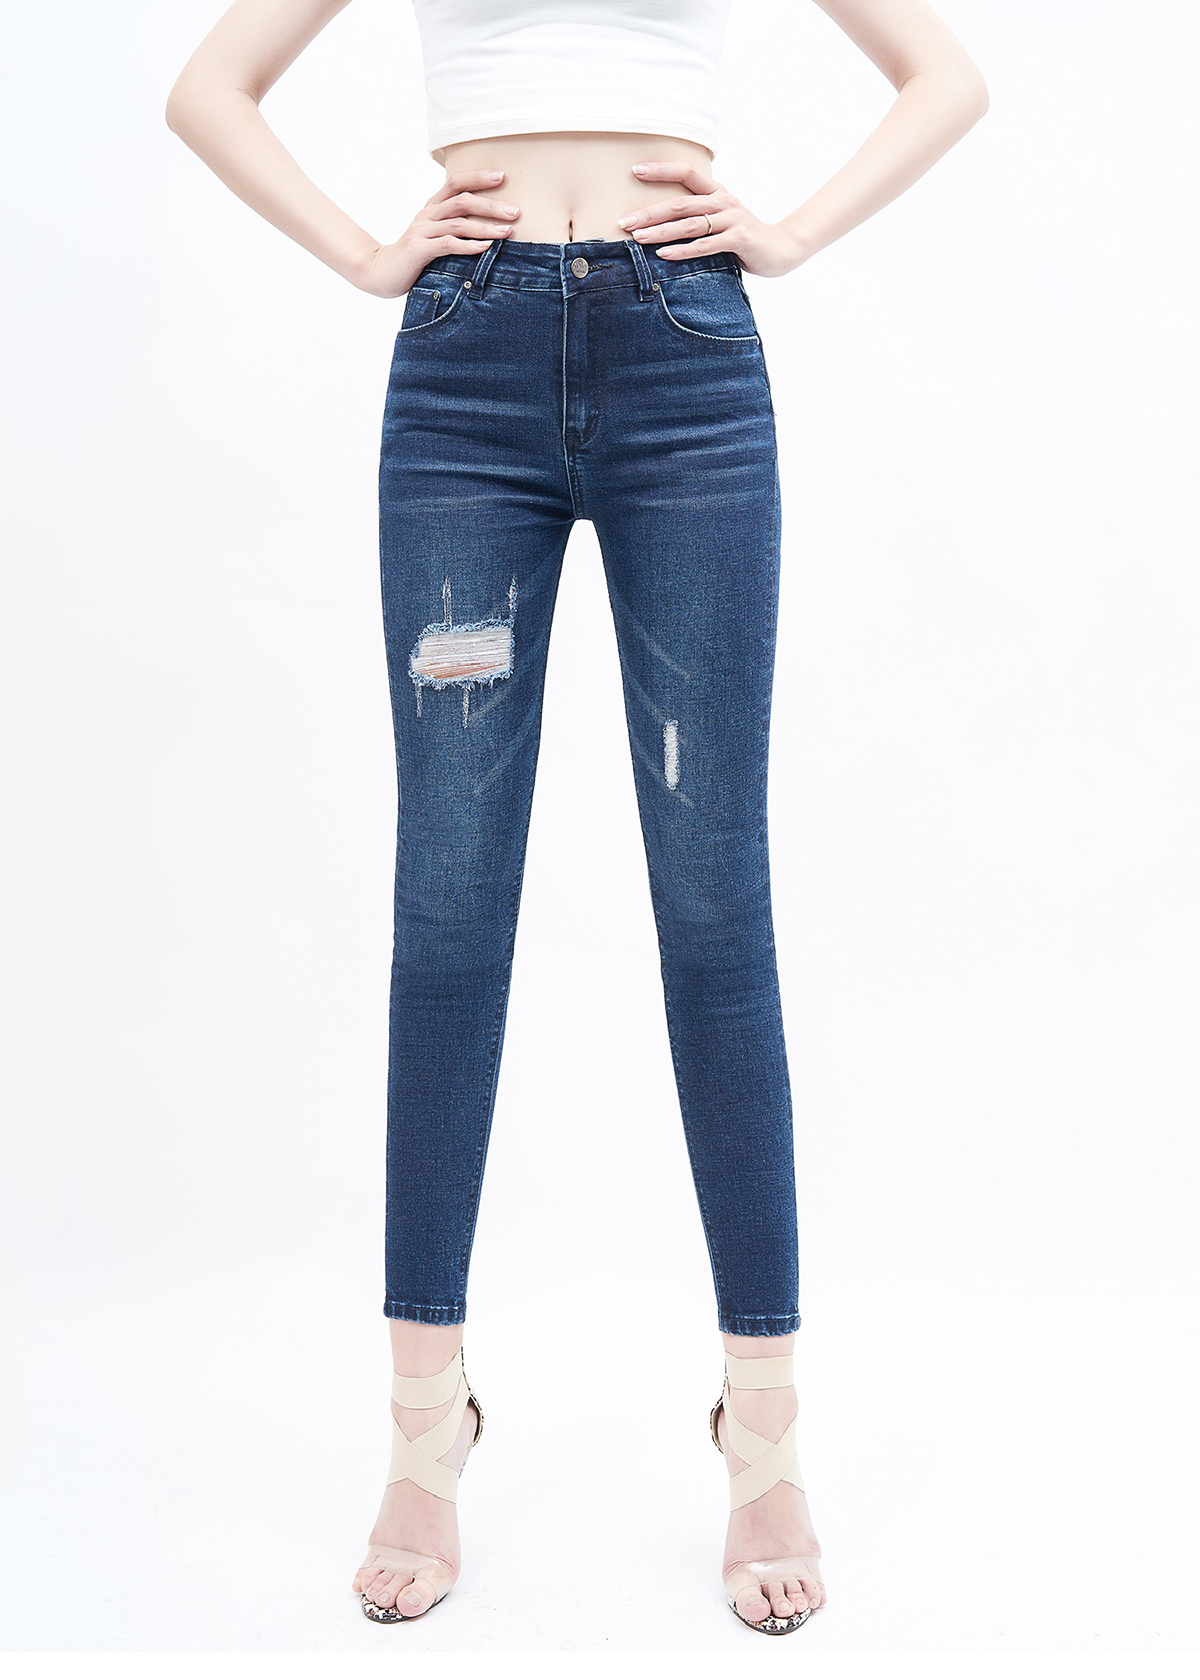 Quần jean nữ AAA JEANS skinny lưng cao rách xanh đậm - 15875399 , 4556379273669 , 62_20114054 , 429000 , Quan-jean-nu-AAA-JEANS-skinny-lung-cao-rach-xanh-dam-62_20114054 , tiki.vn , Quần jean nữ AAA JEANS skinny lưng cao rách xanh đậm